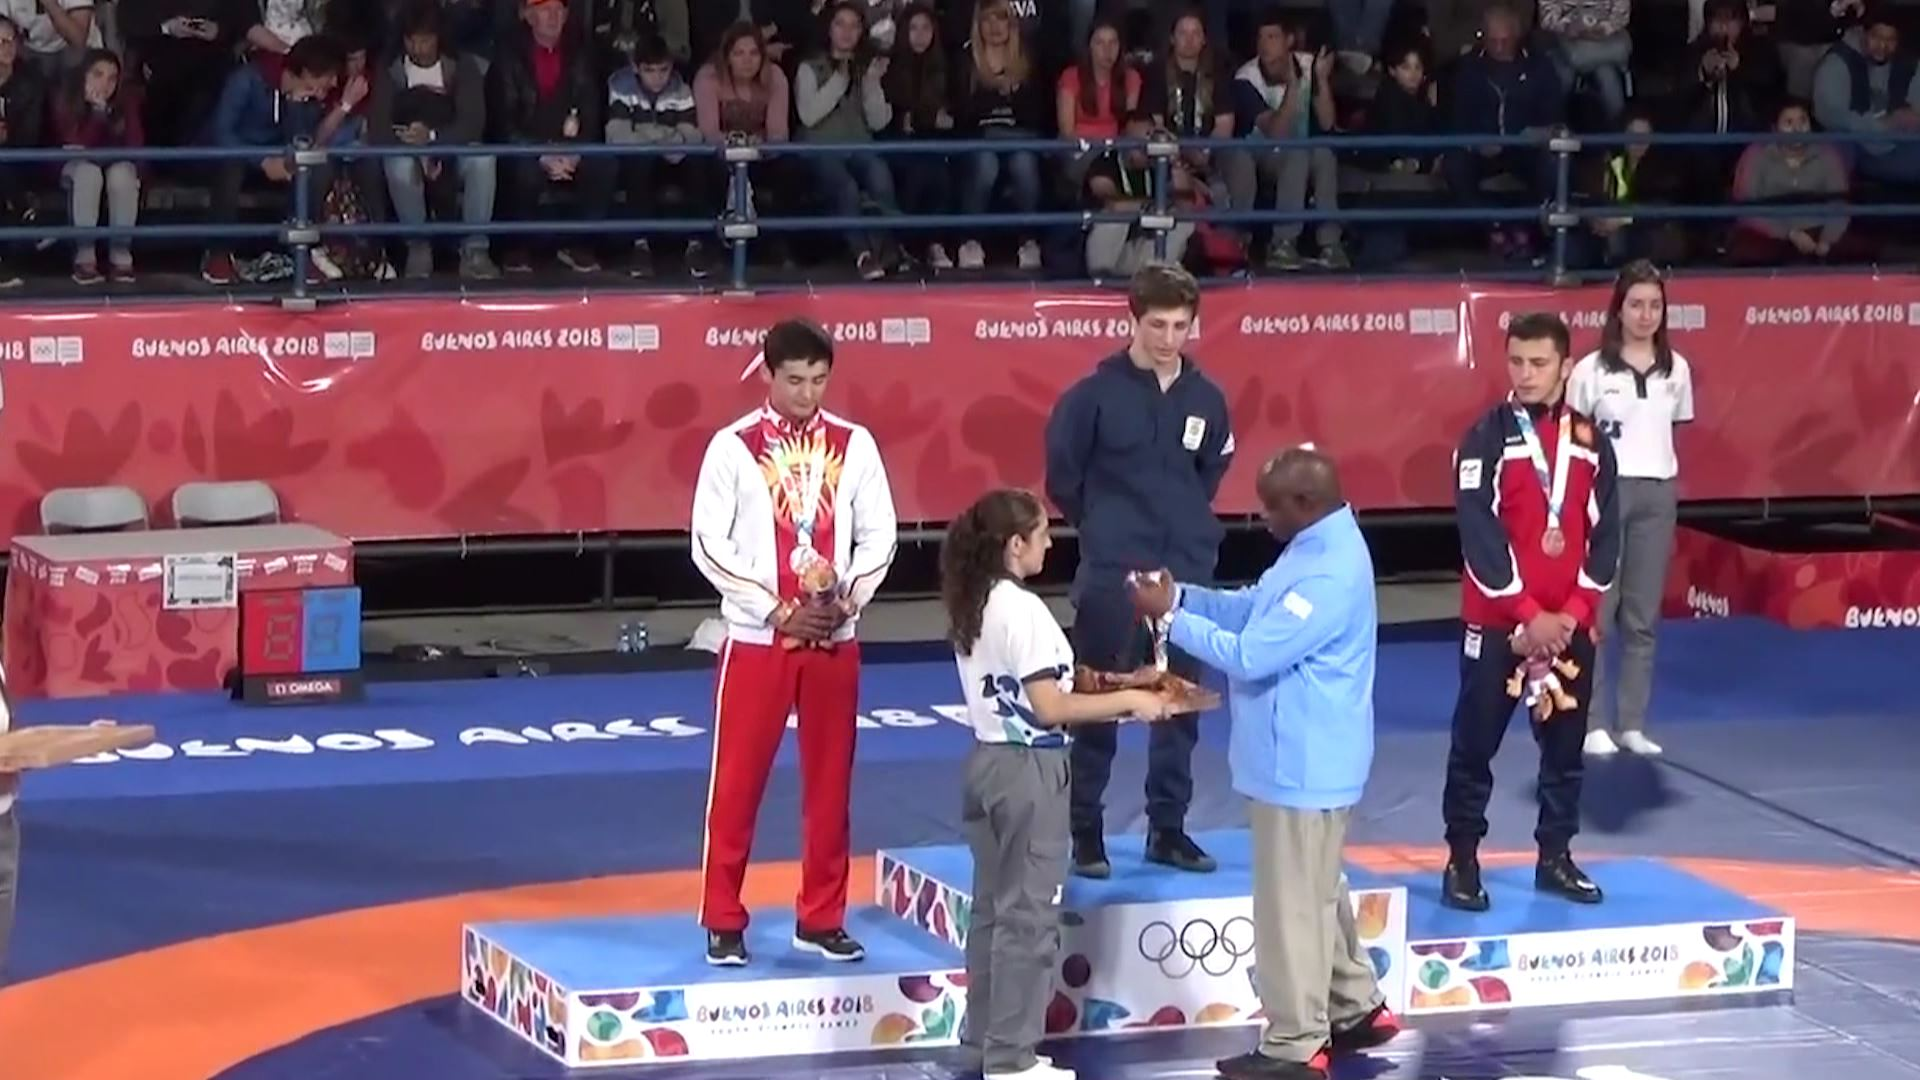 Georgian athletes finished the competition at the Youth Olympiad